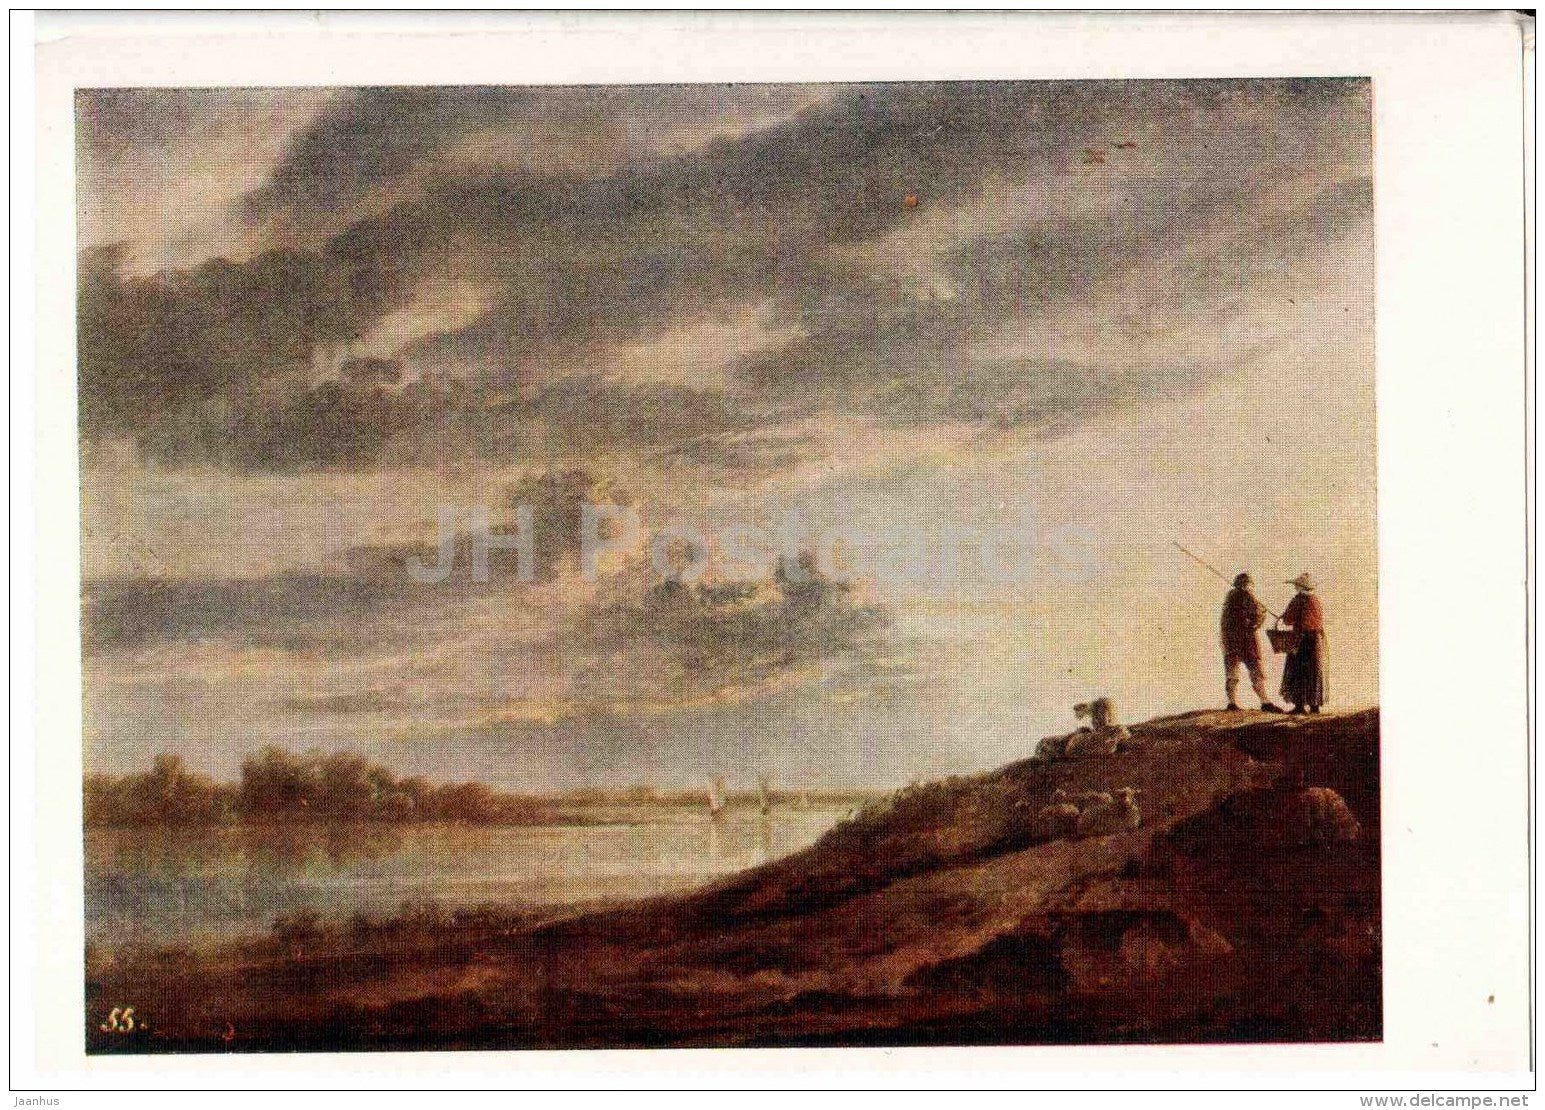 painting by Aelbert Cuyp - Sunset on the river - Dutch art - 1959 - Russia USSR - unused - JH Postcards